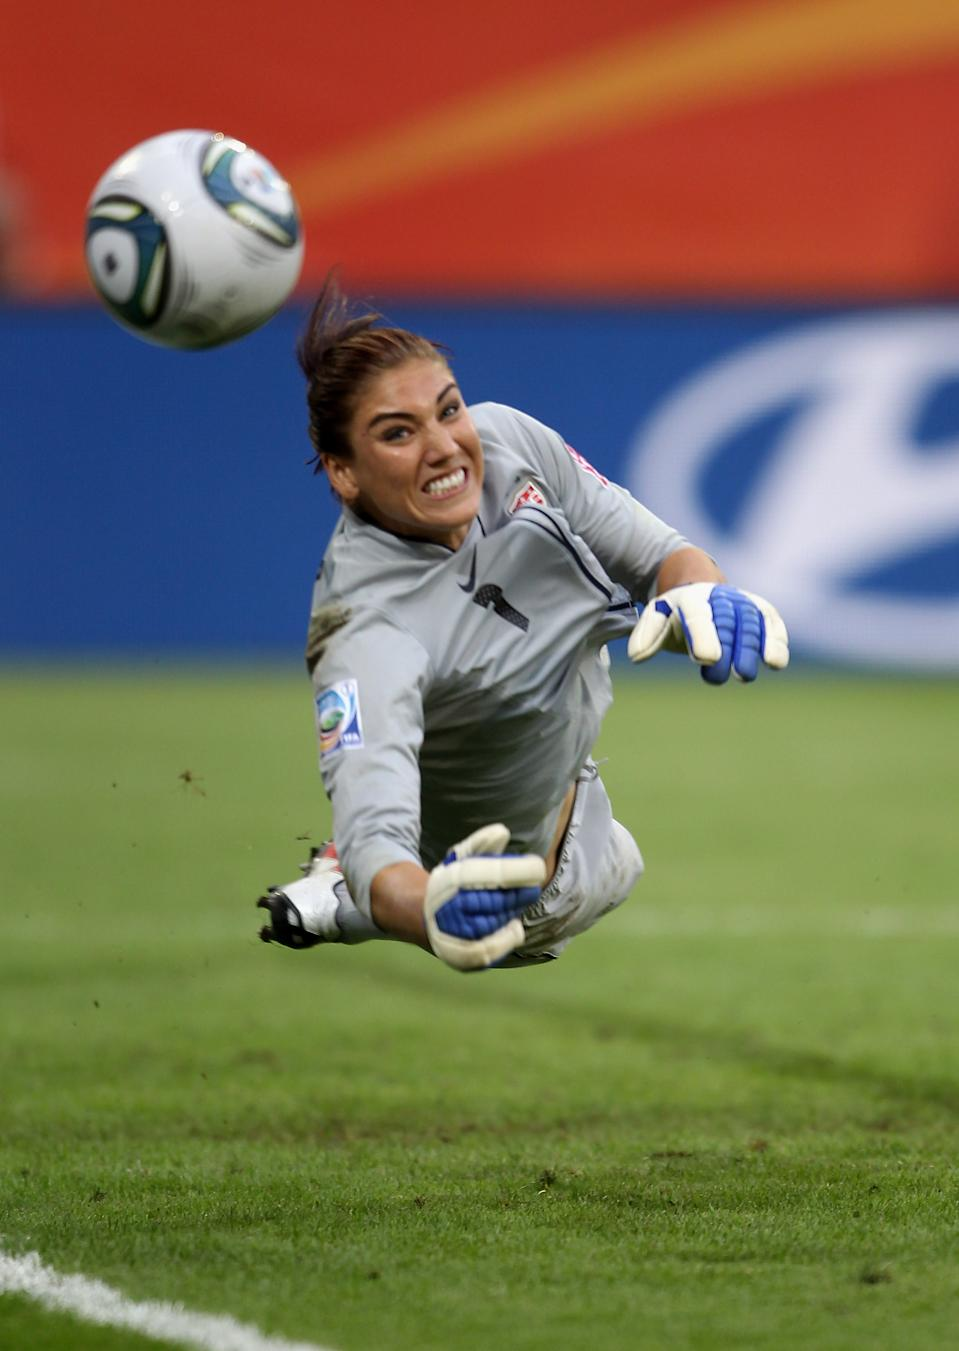 Hope Solo of USA saves a penalty during the shoot out during the Women's World Cup Quarter Final match between Brazil and USA at Rudolf-Harbig Stadium on July 10, 2011 in Dresden, Germany. (Photo by Scott Heavey/Getty Images)